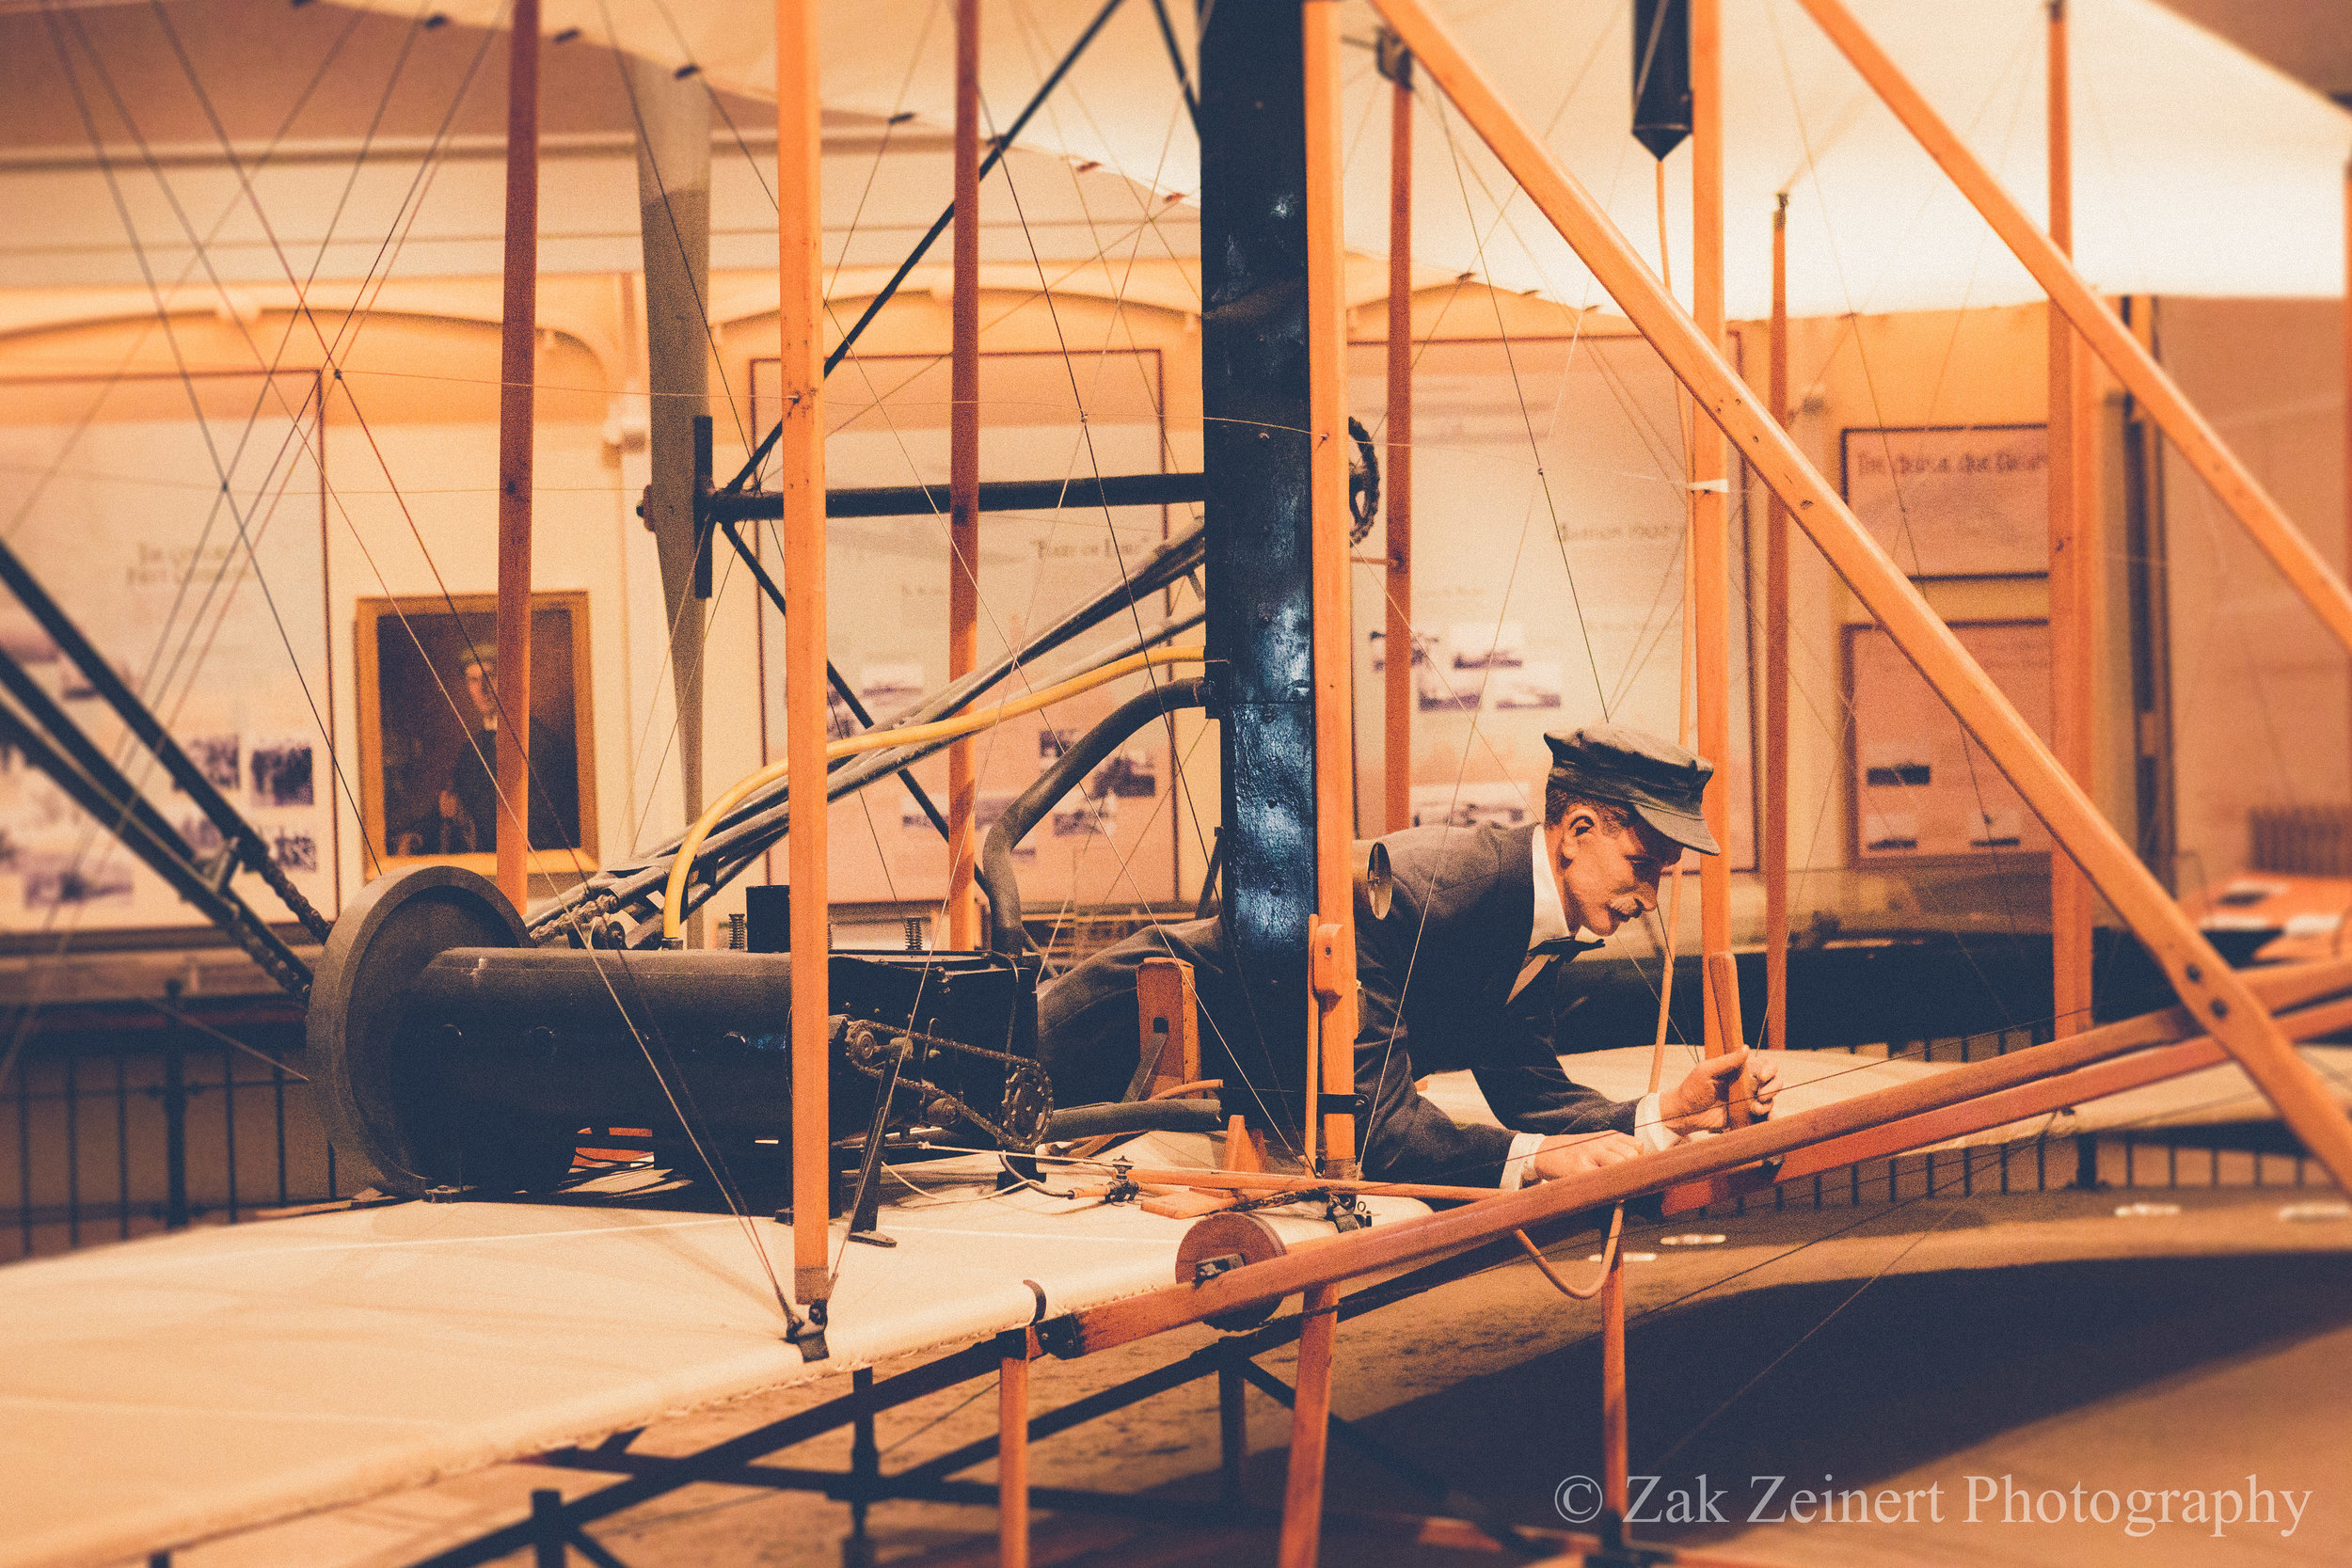 This is the actual Wright Flyer that was flown at Kitty Hawk. Pretty cool to see up close after having just visited Kitty Hawk a few weeks prior